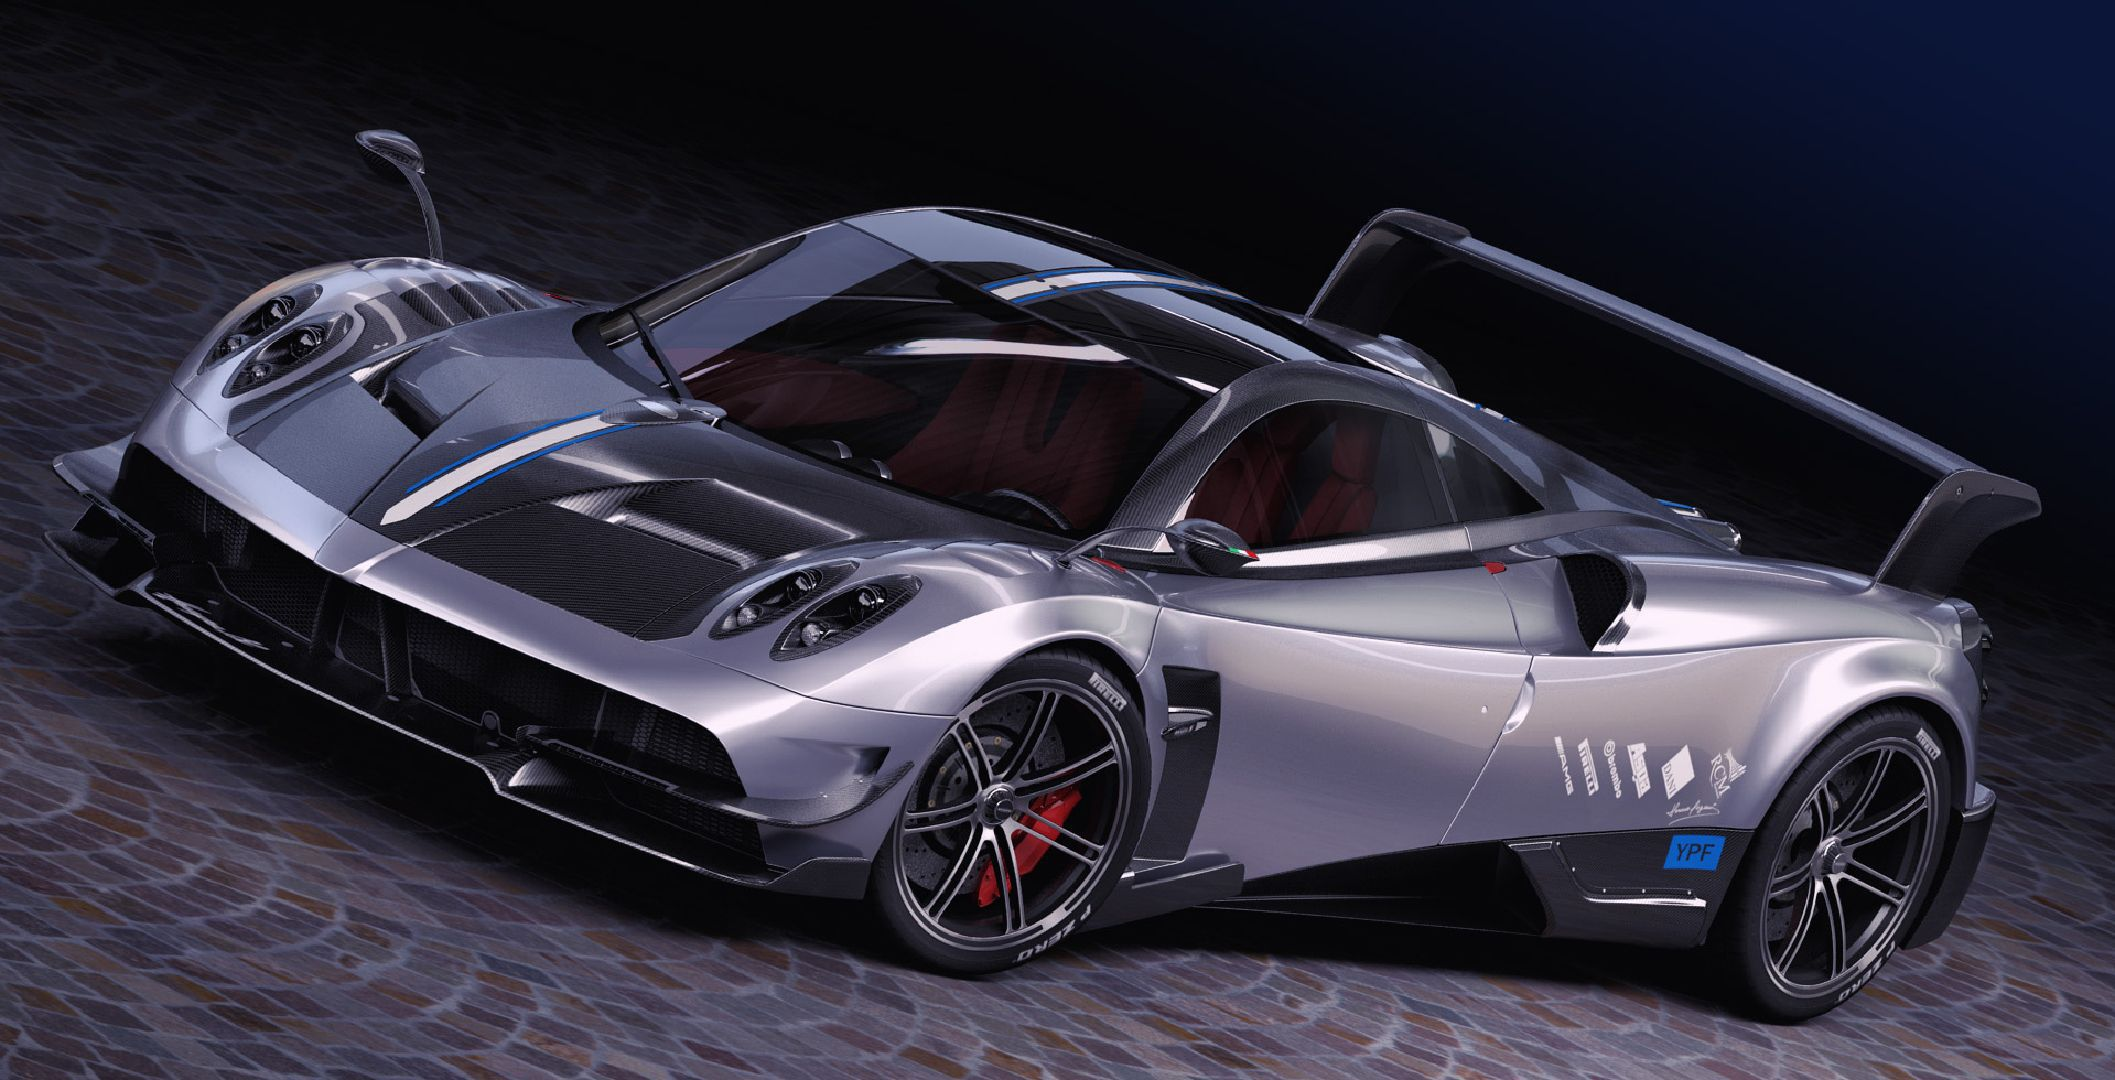 2016 Cadillac Suv >> Pagani Huayra bc Wallpapers Backgrounds